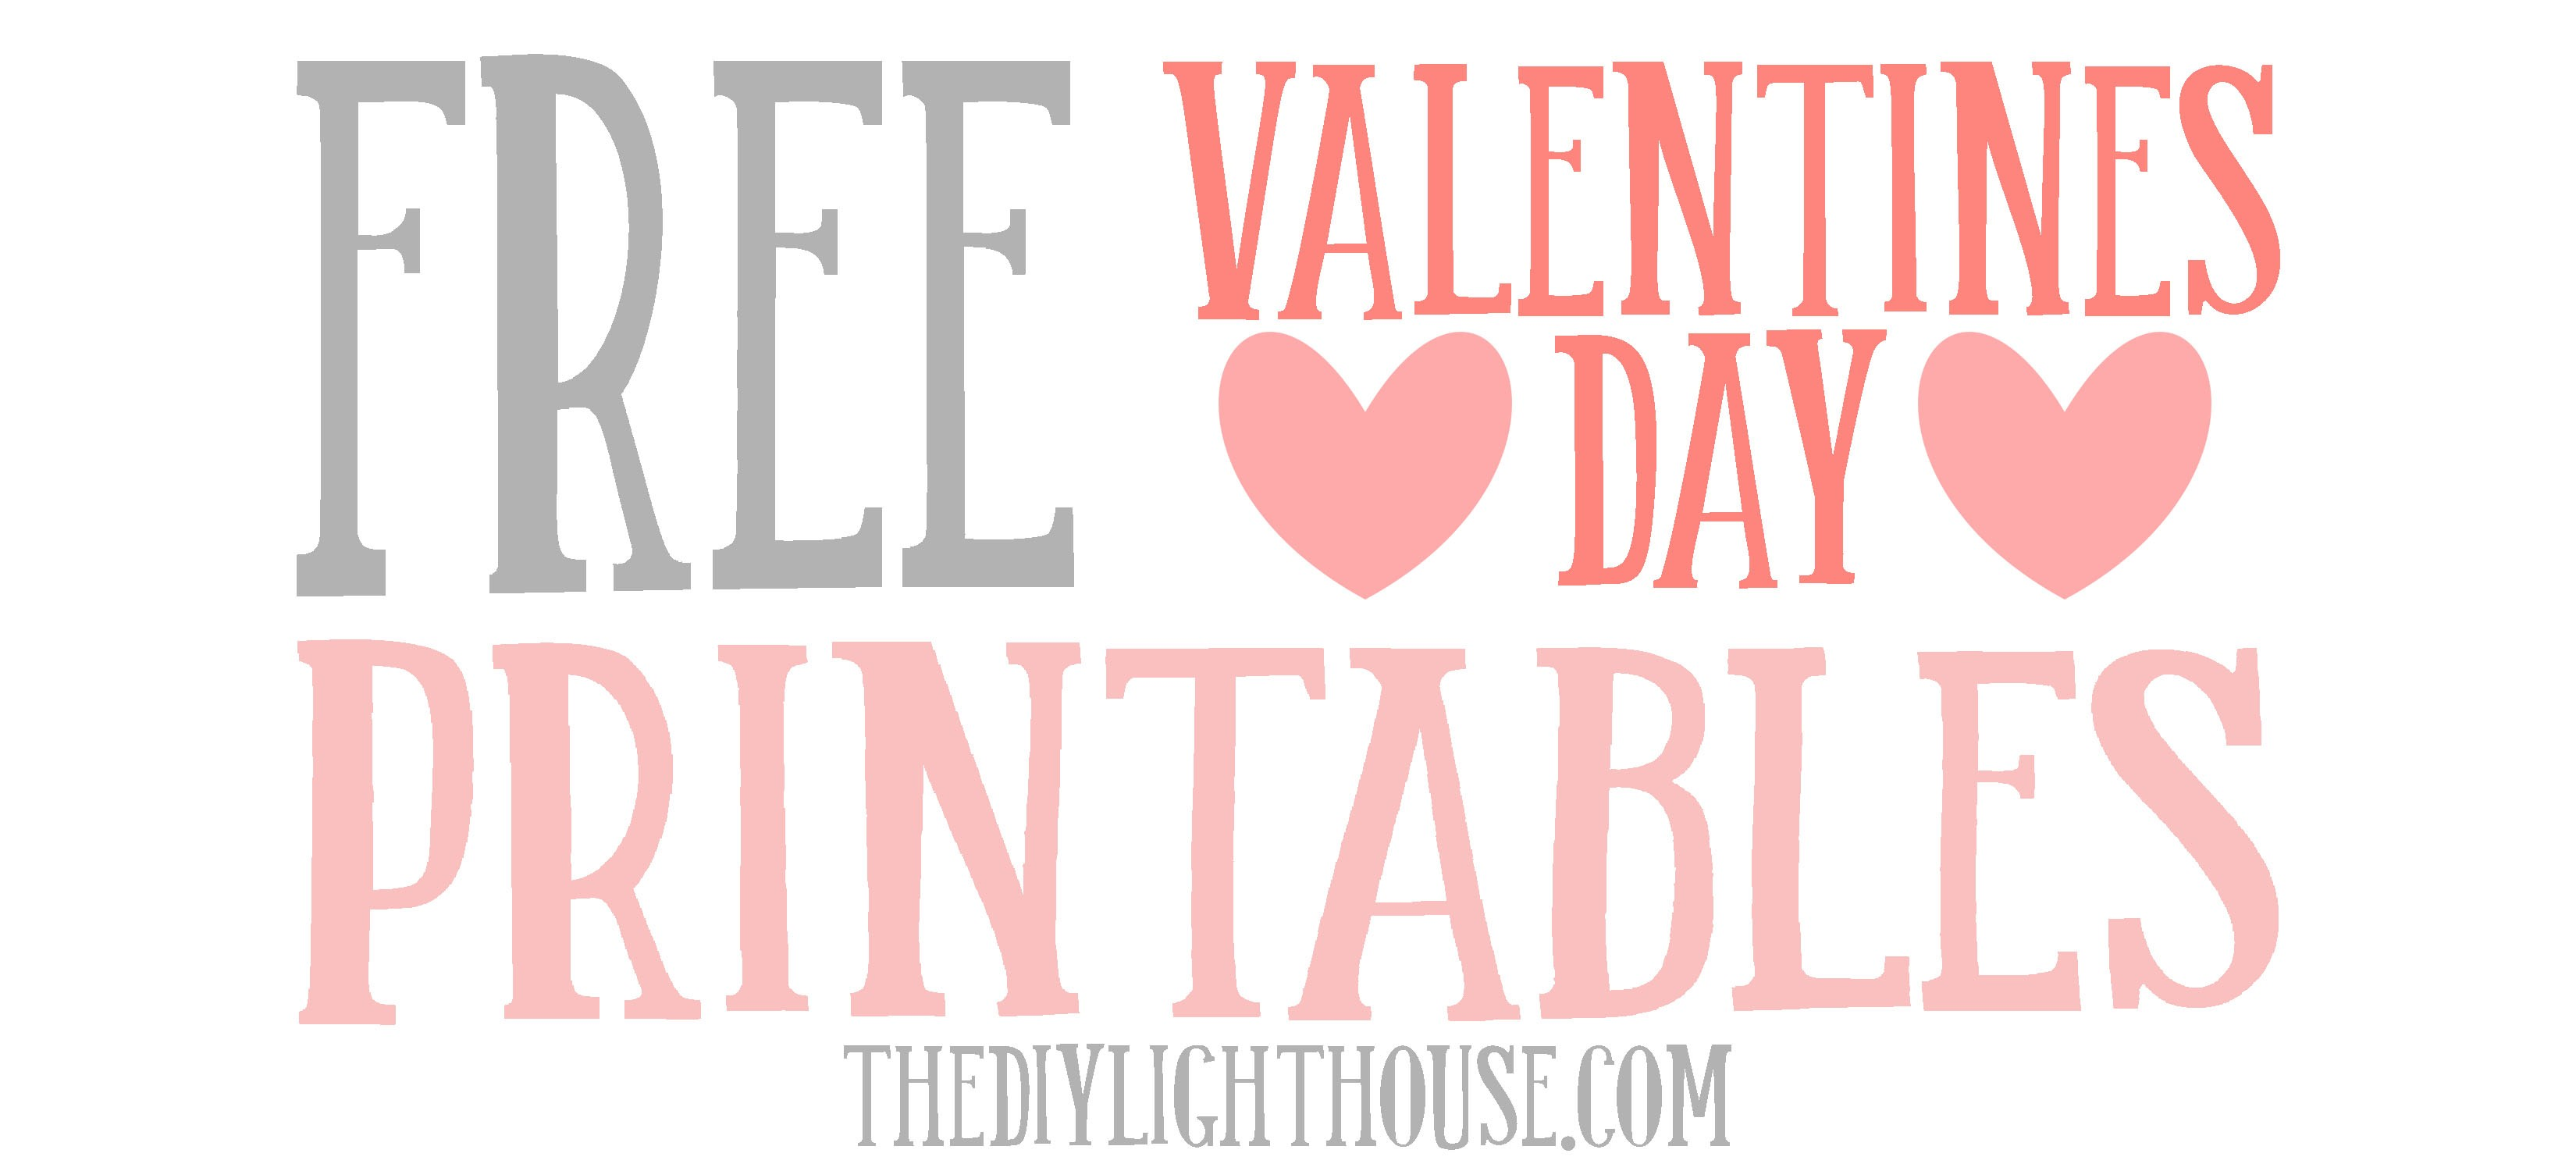 free valentines day printables you ll love the diy lighthouse